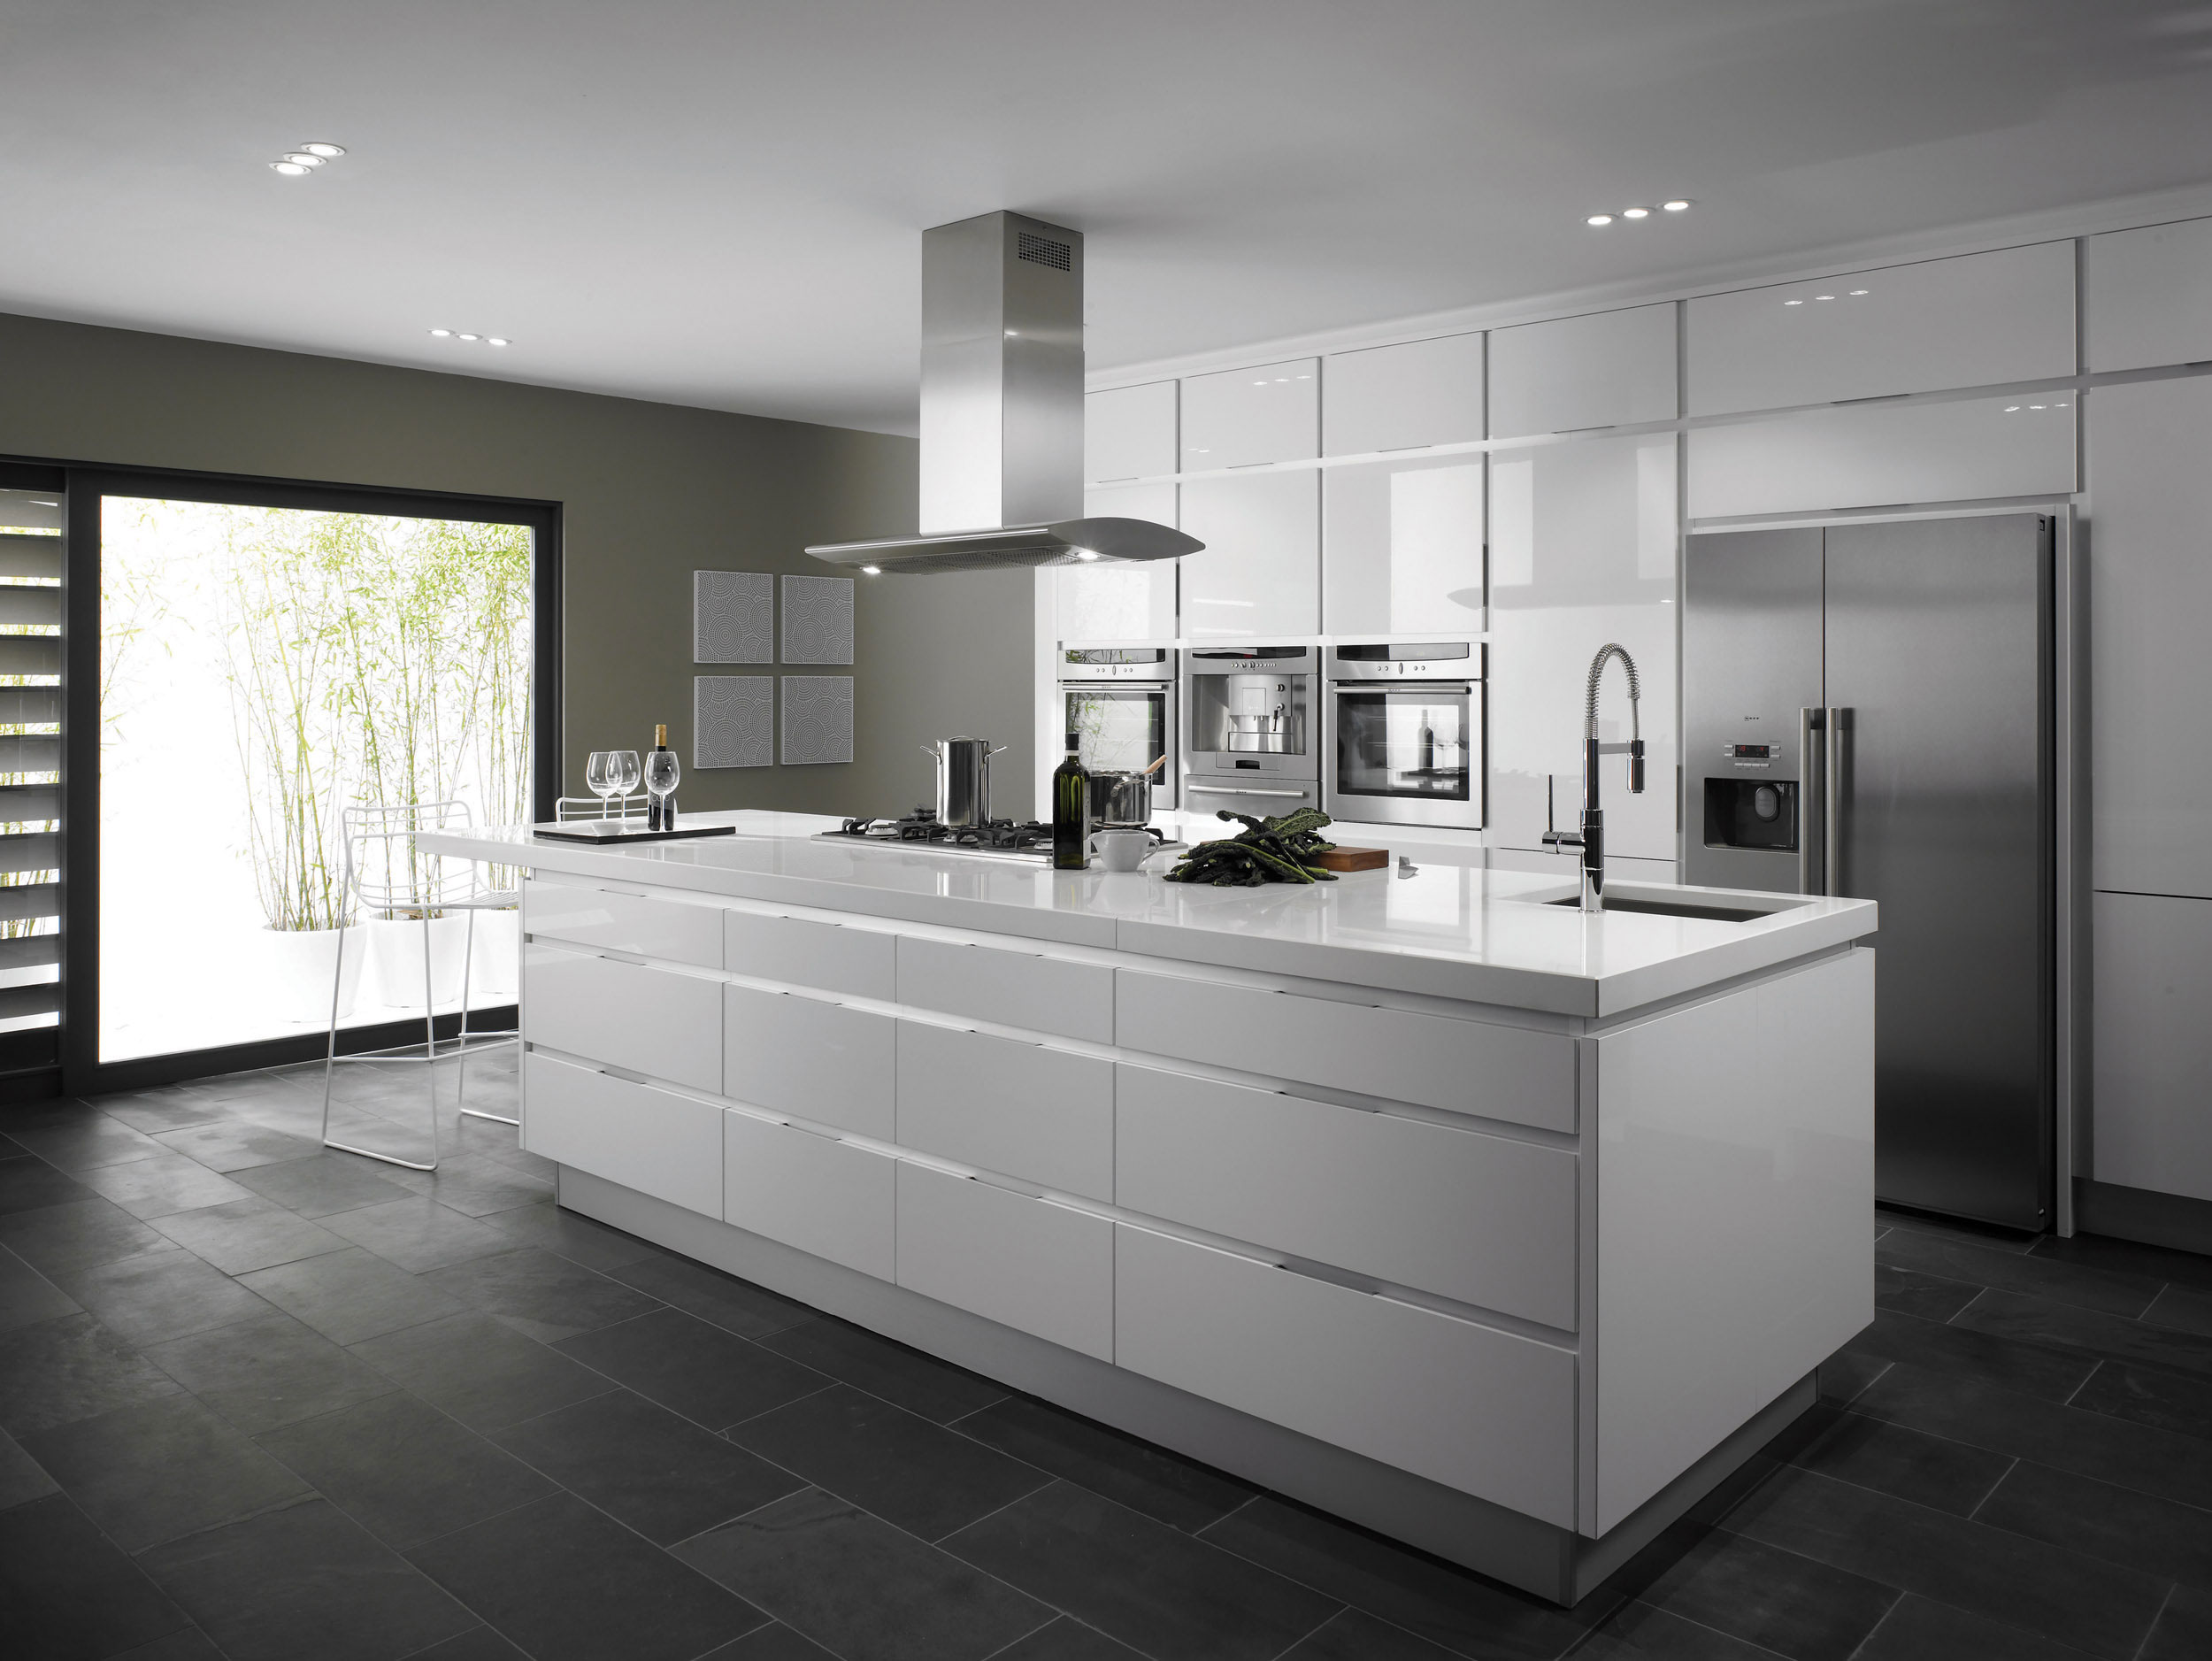 Integrato white from eaton kitchen designs wolverhampton - White kitchen ideas that work ...